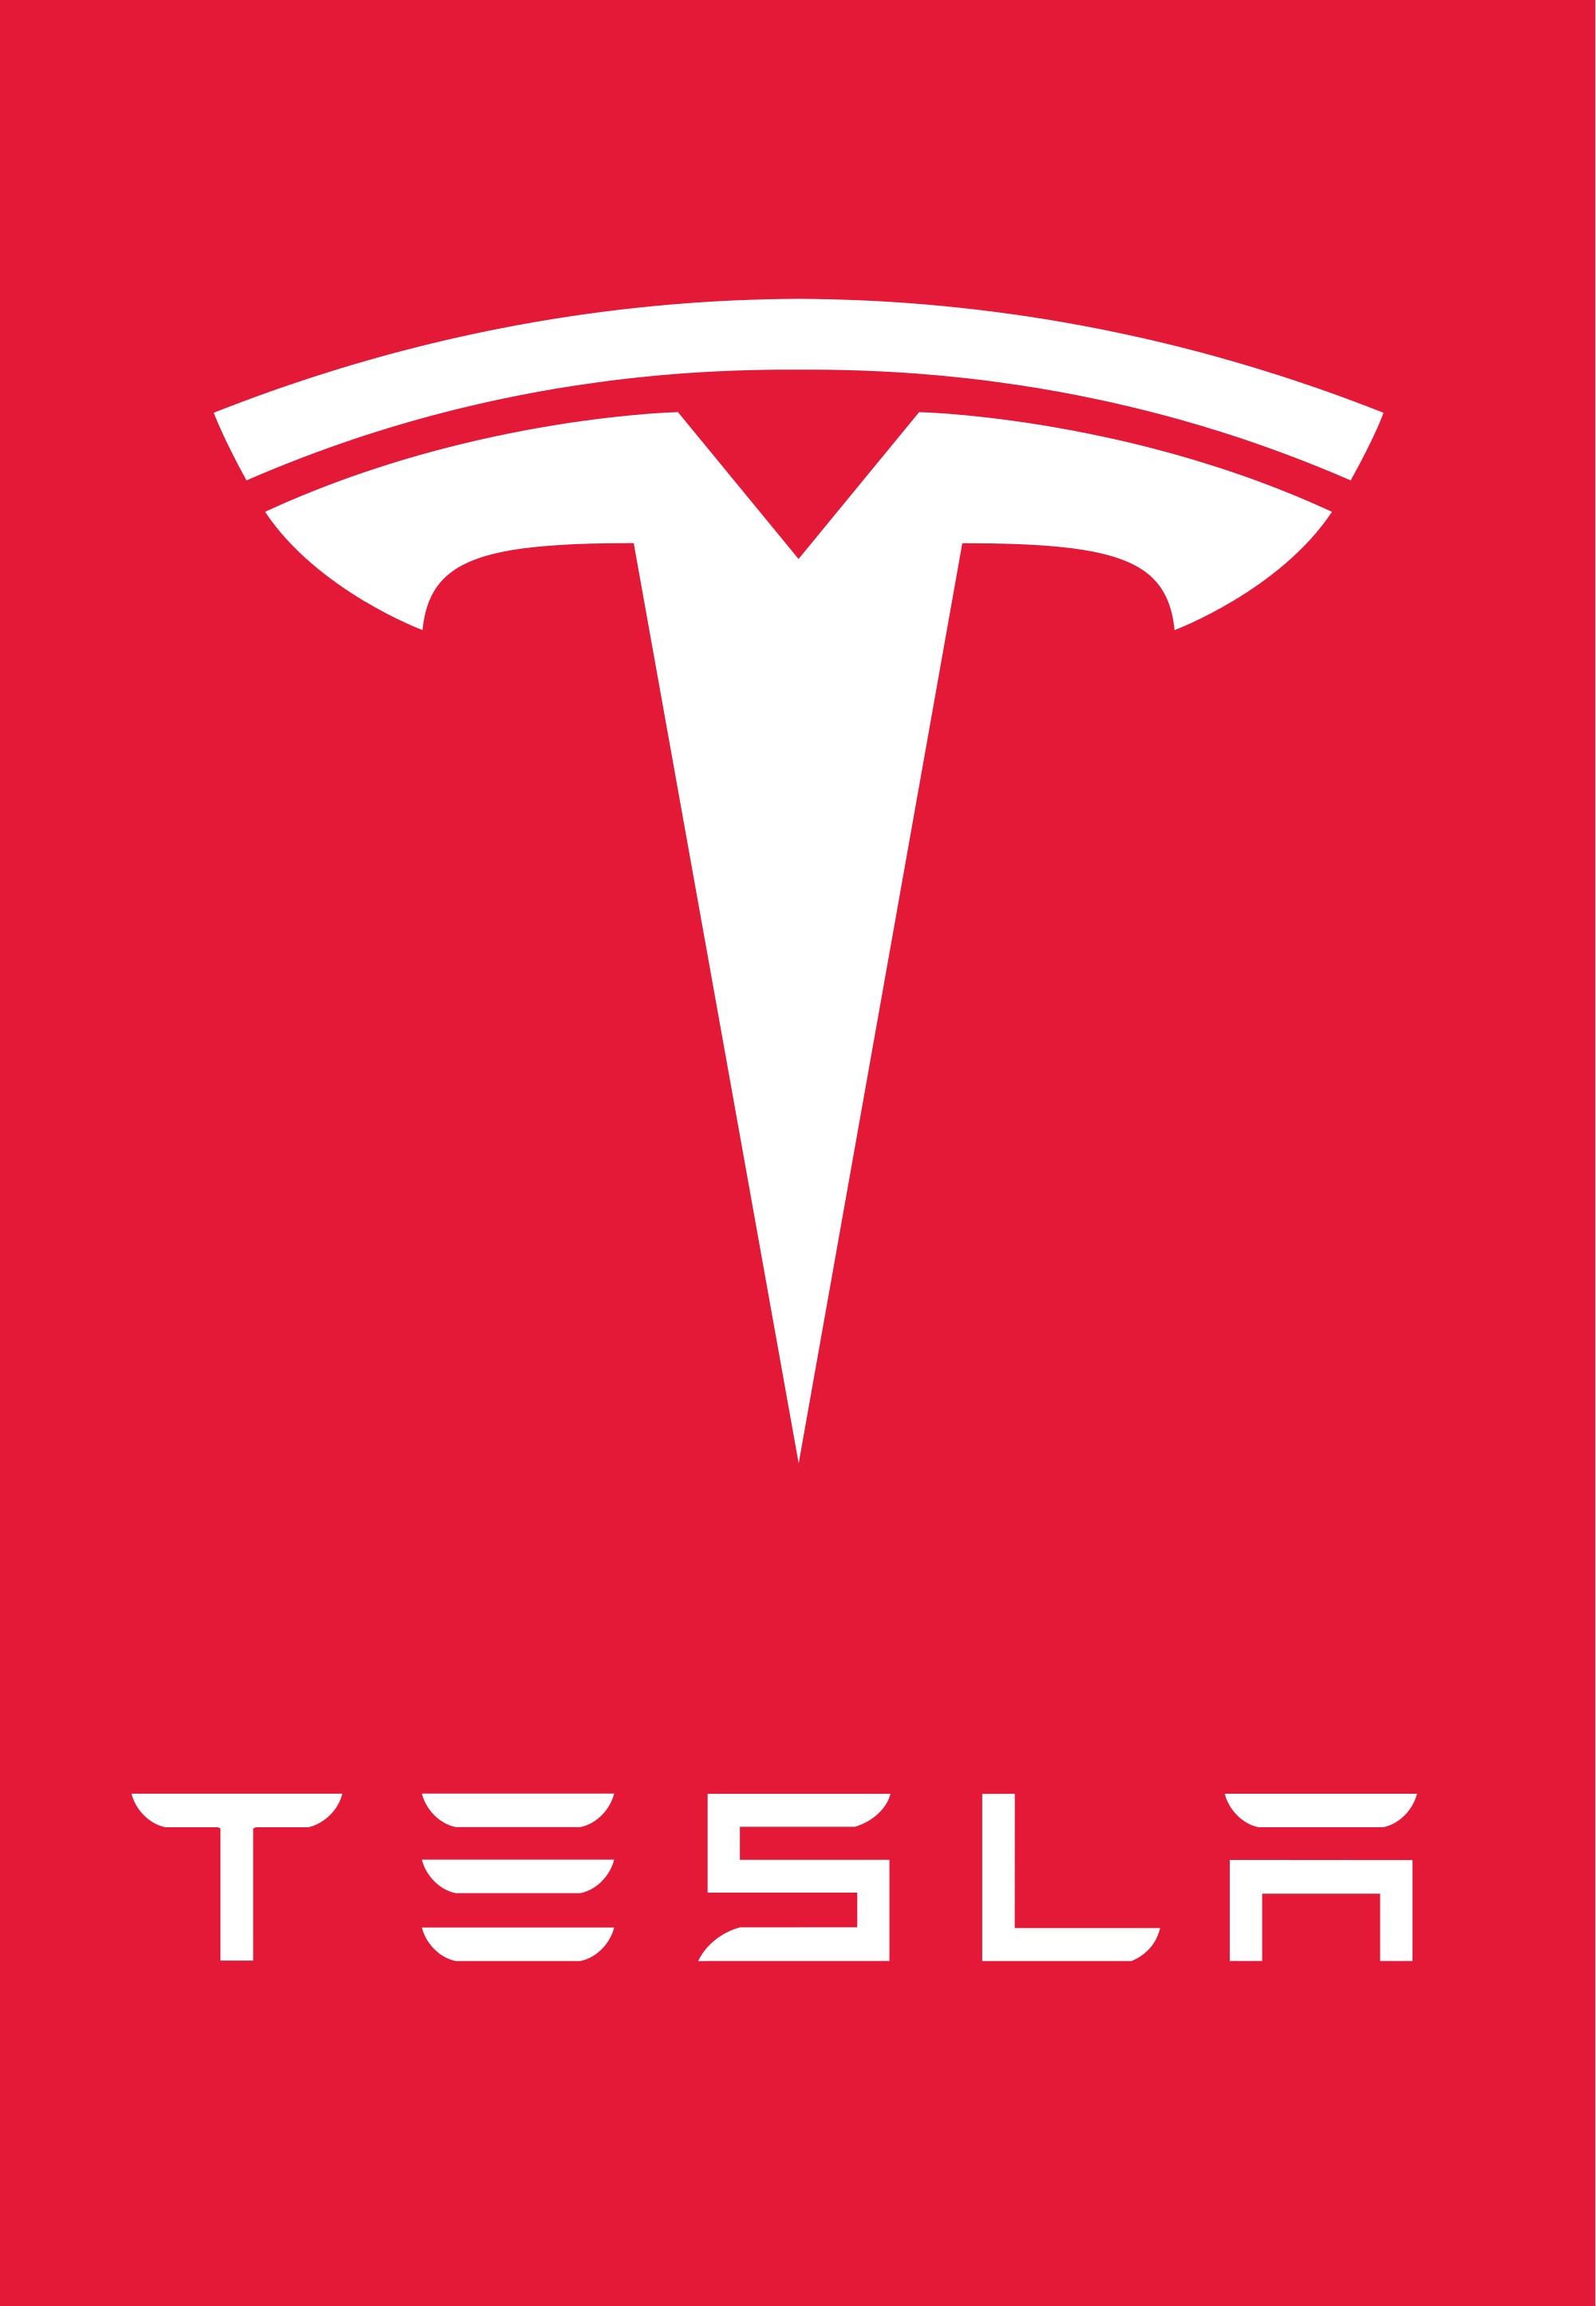 Tesla Logo - Tesla Logo | icon | Pinterest | Tesla logo, Tesla motors and Logos